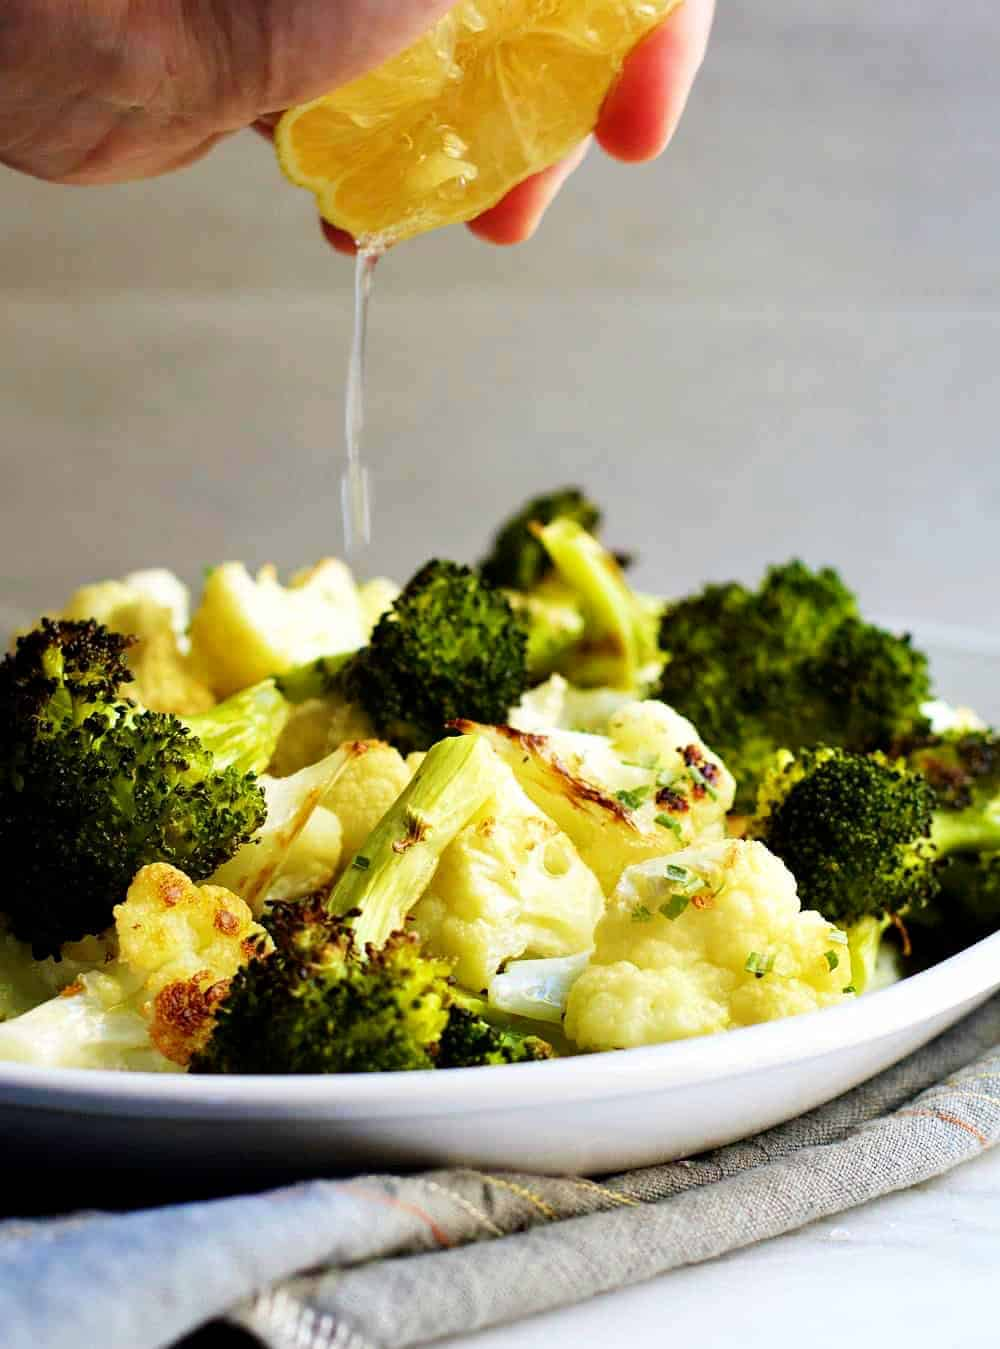 Squeezing Fresh Lemon over Roasted-Broccoli-and-Califlower